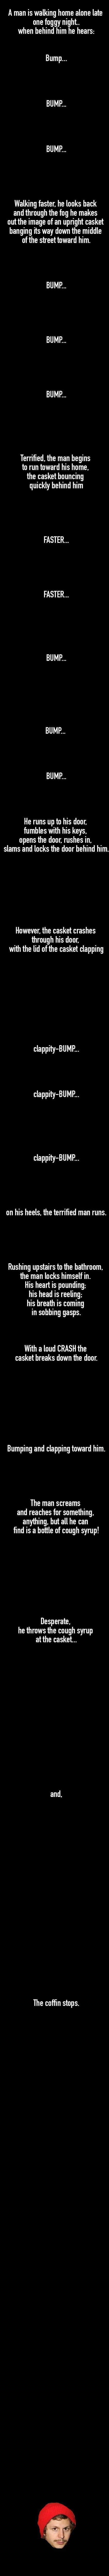 The COUGHING stops.